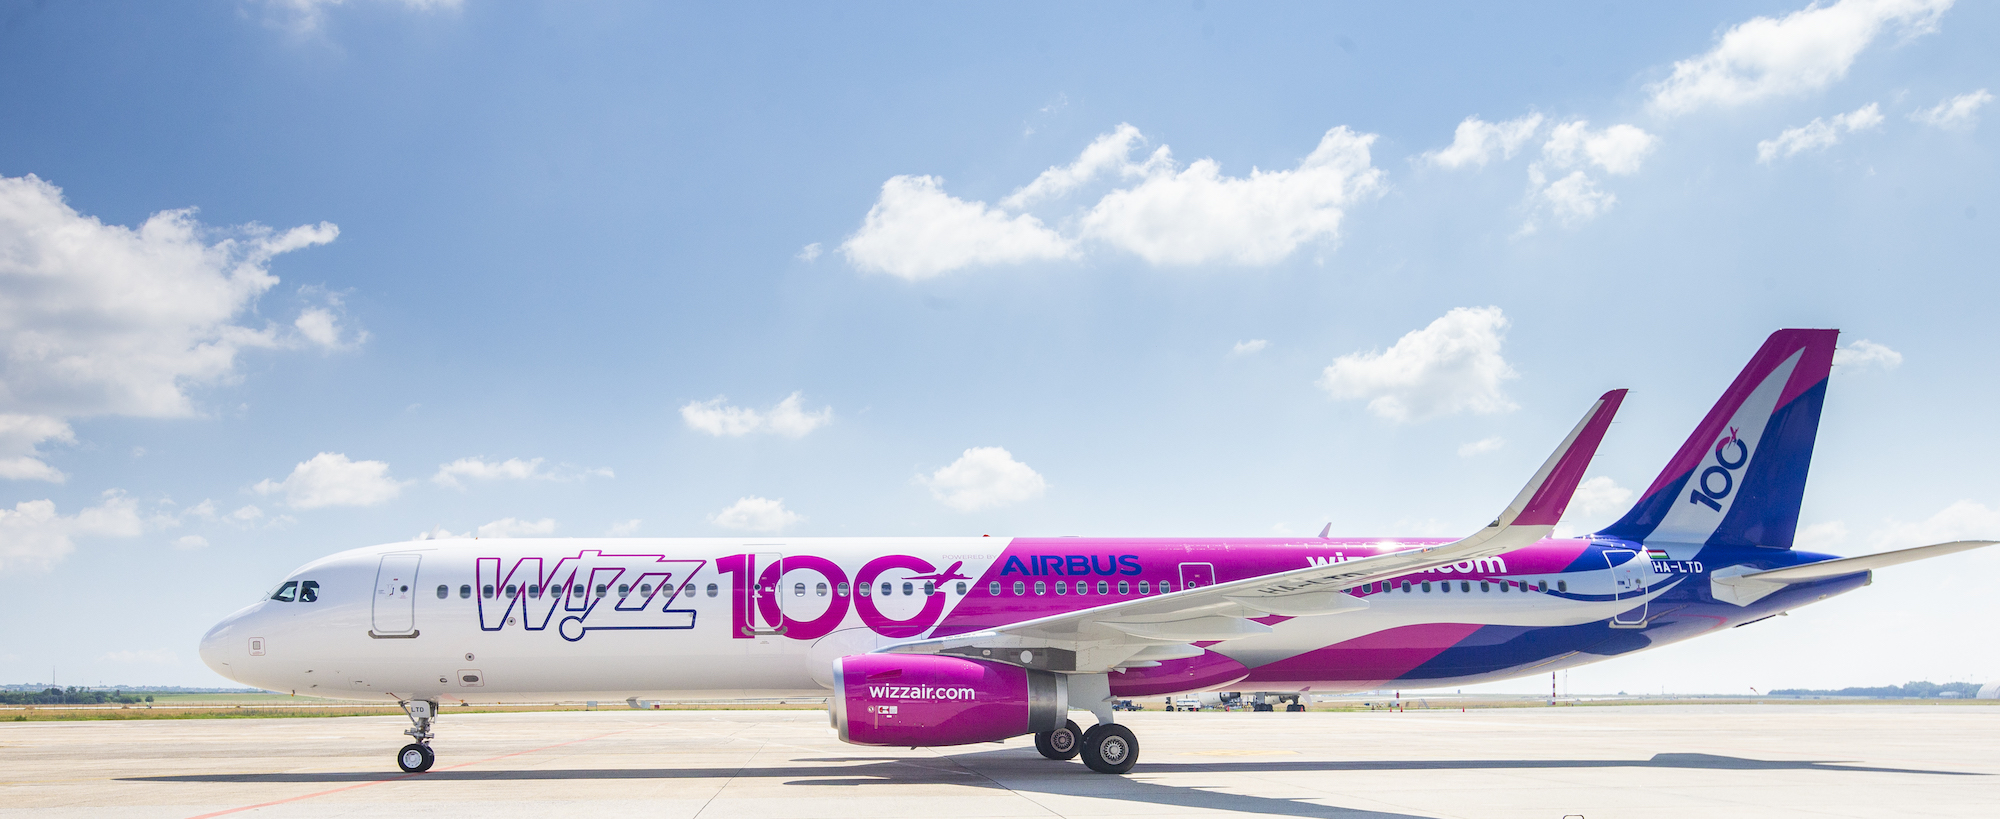 Wizz Air Abu Dhabi announces three new routes to Europe and Middle East